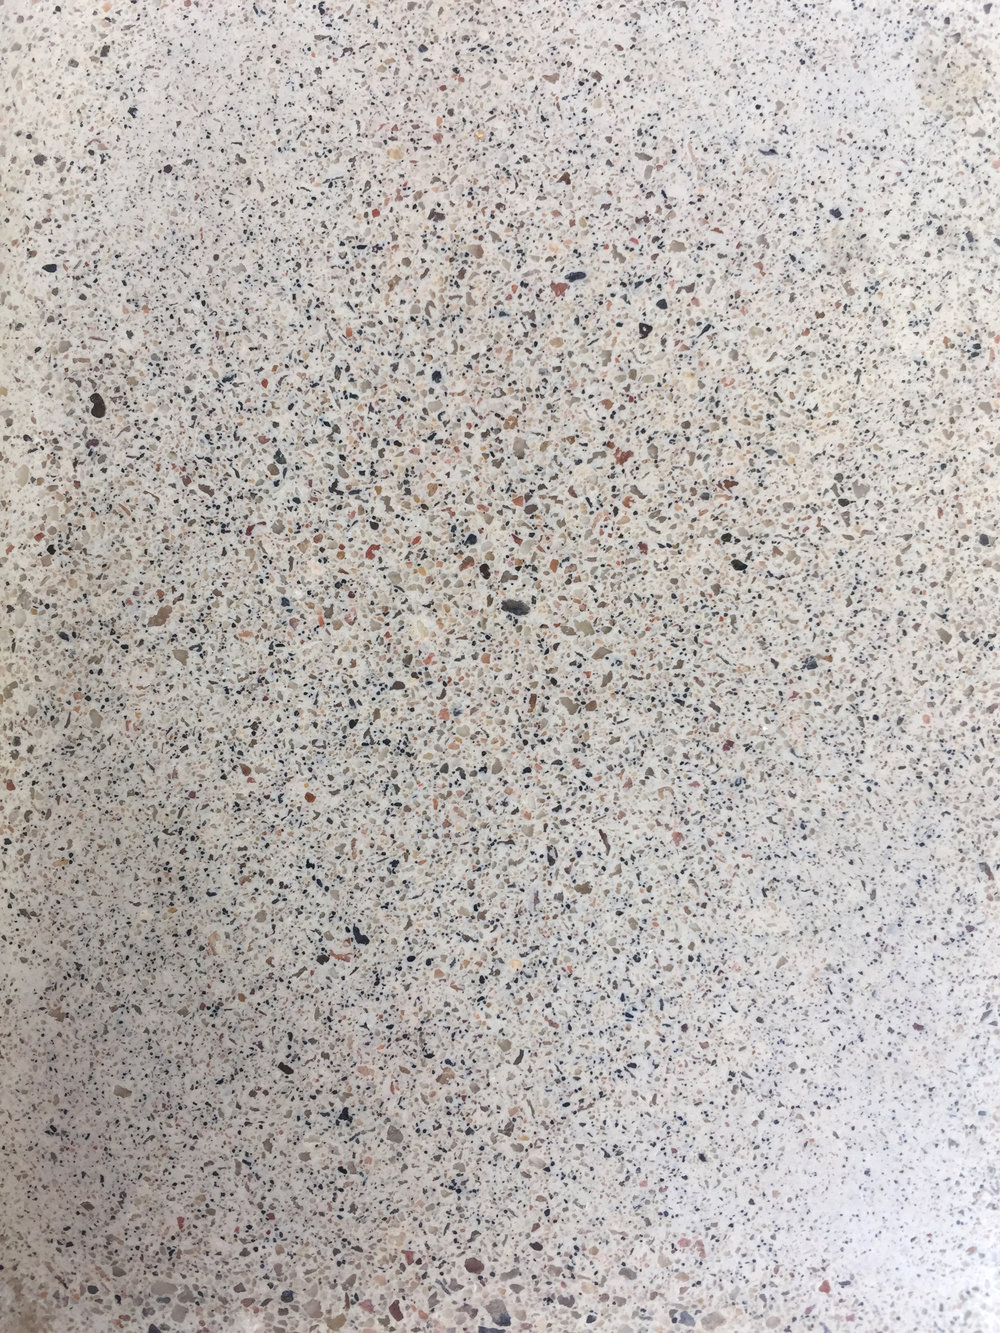 greyrockconcrete_greyrock_ground_finish_concrete_customconcretecolorado.jpg